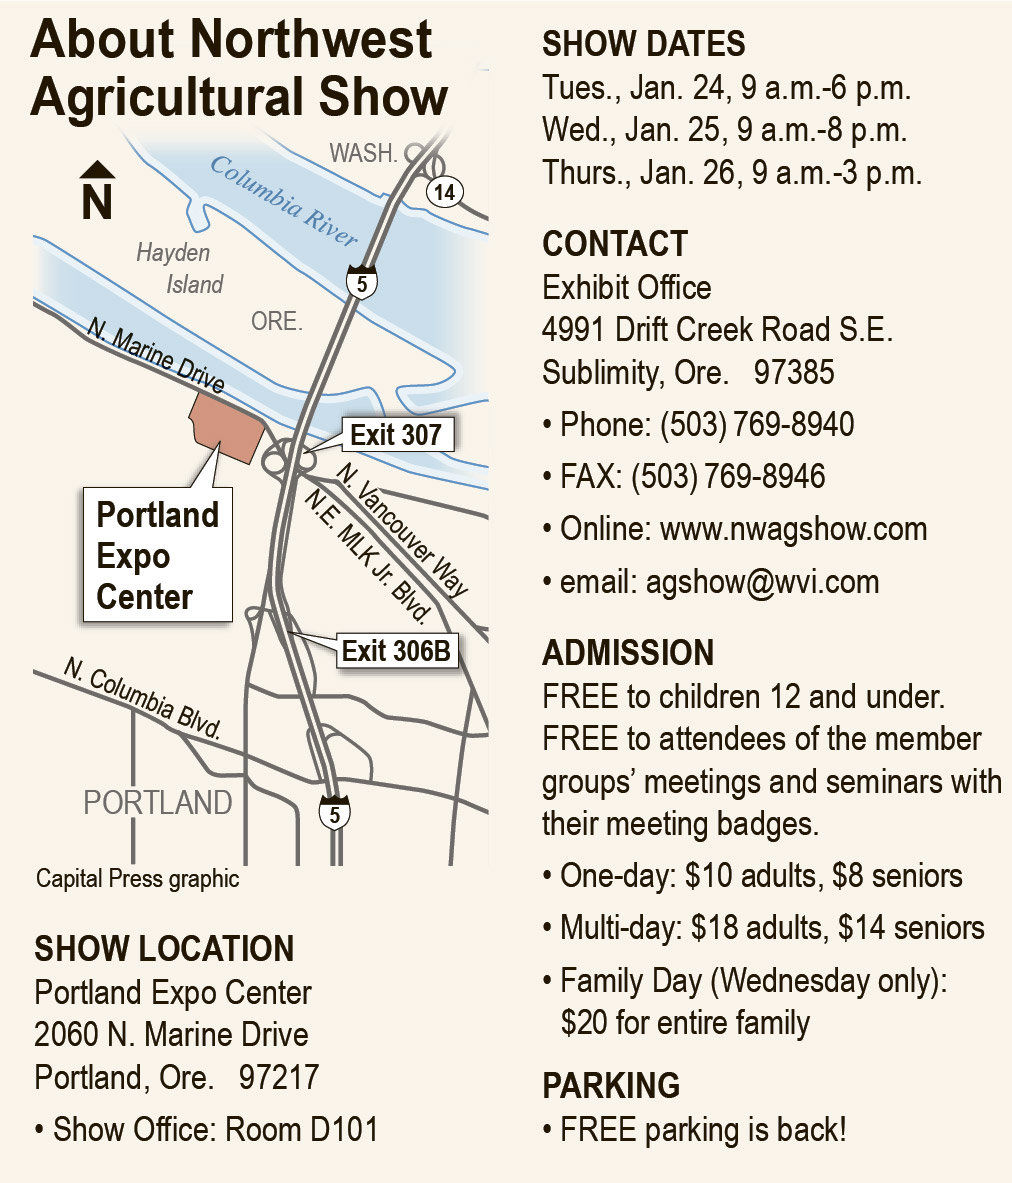 Northwest Ag Show offers everything today's farmer needs